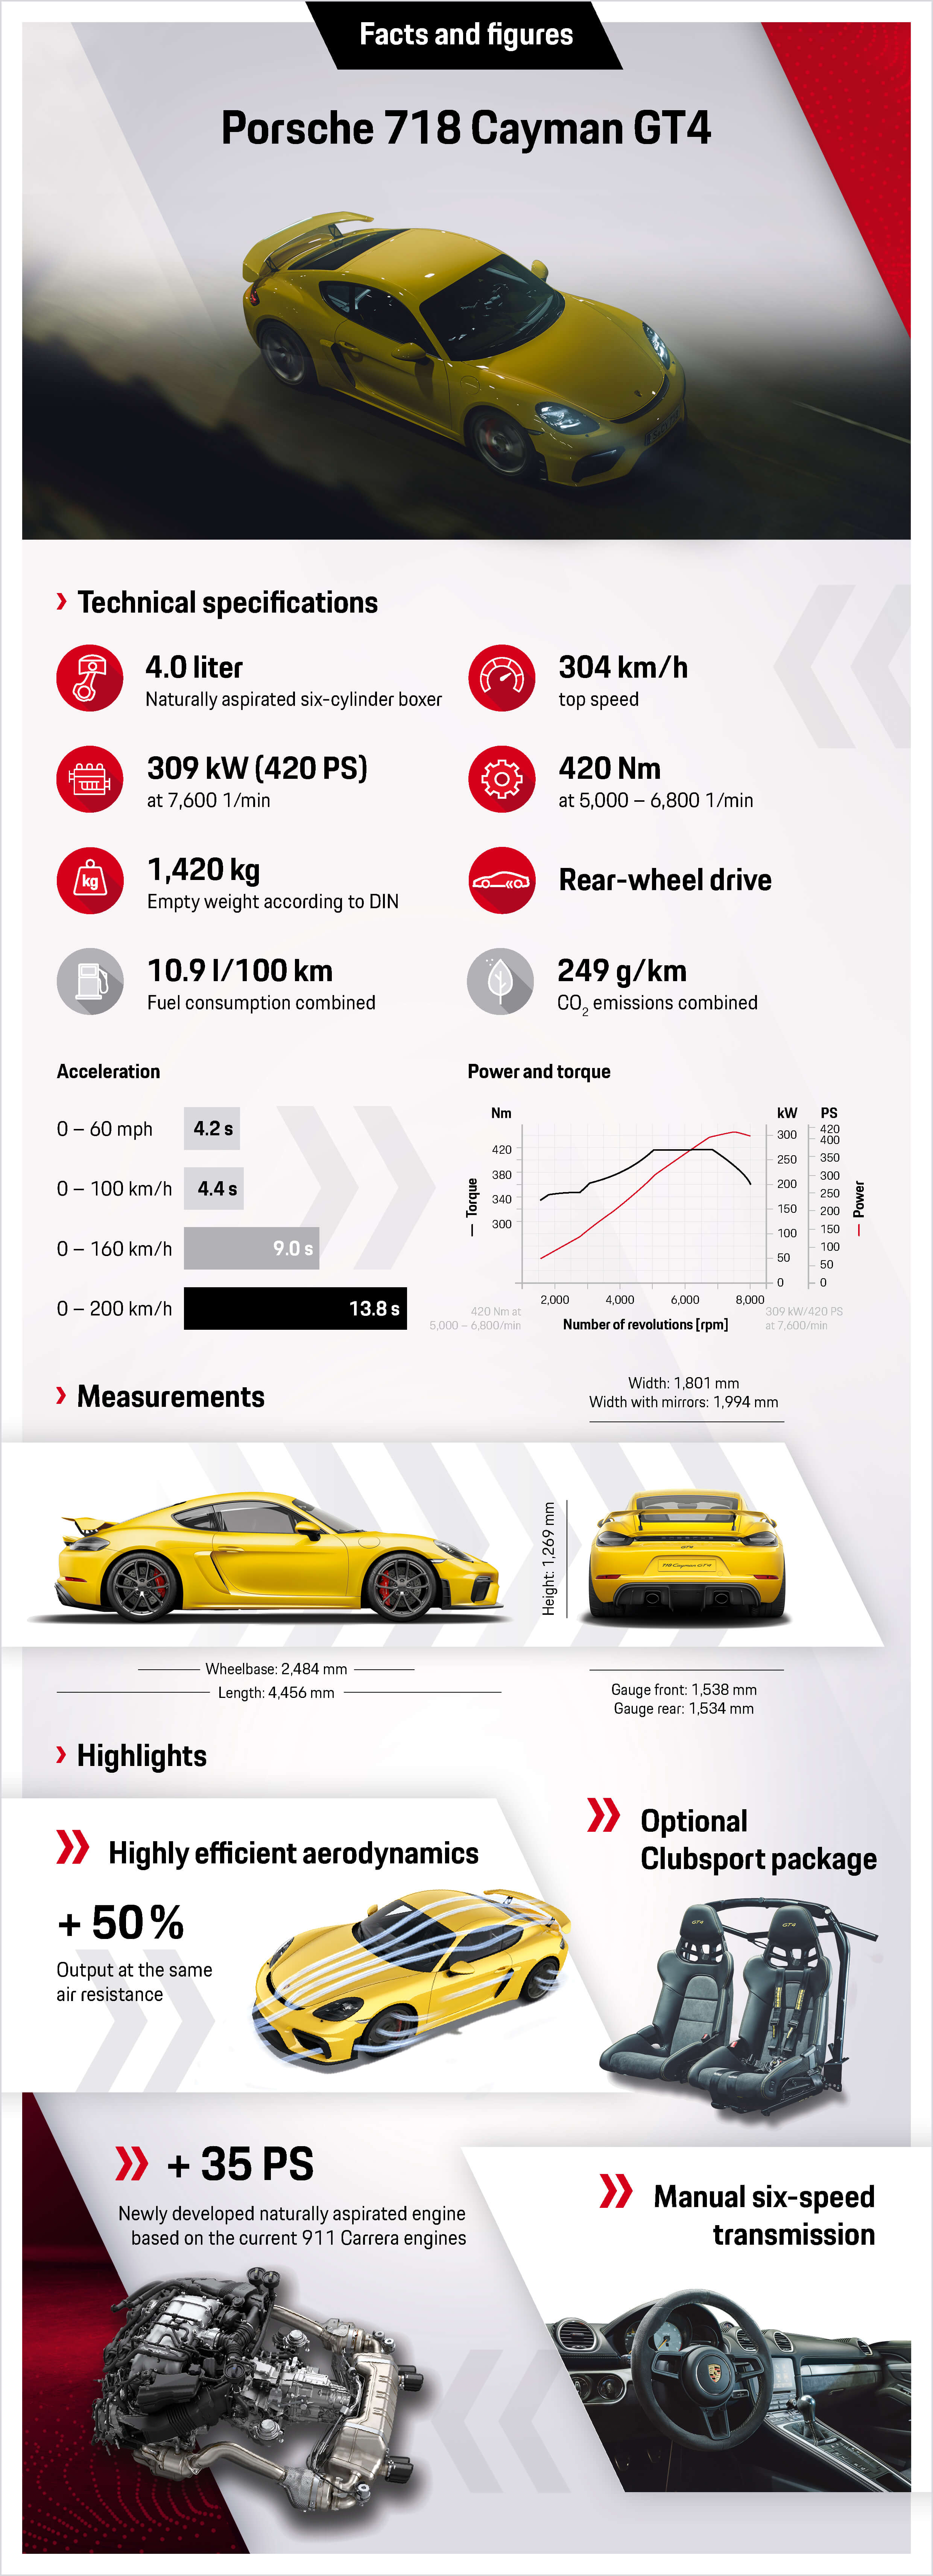 2019 Porsche 718 Cayman GT4 facts and figures infographic